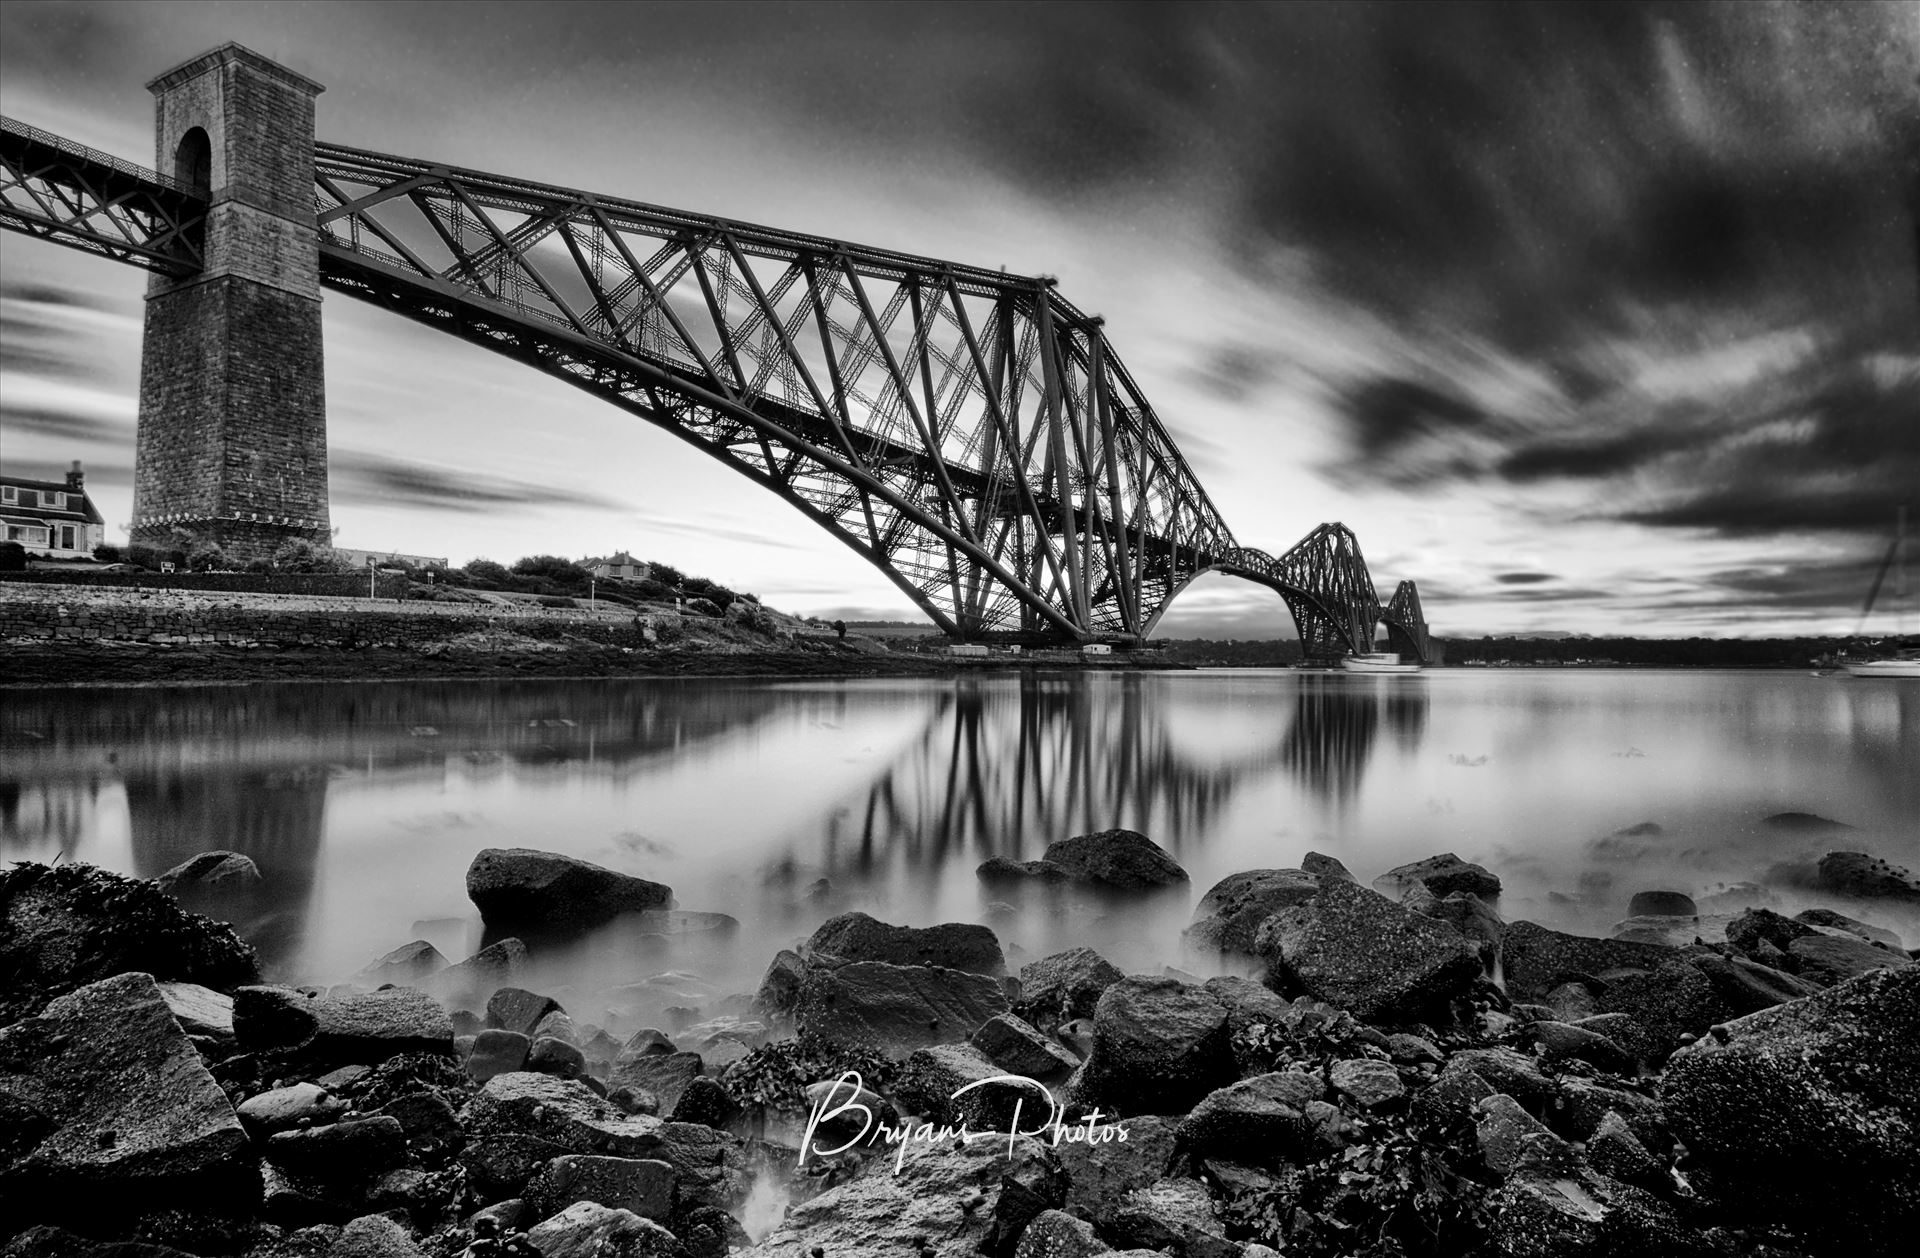 The Rail Bridge Black & White A black and white long exposure photograph of the iconic Forth Rail Bridge taken on a summer evening from North Queensferry on the banks of the river Forth. by Bryans Photos